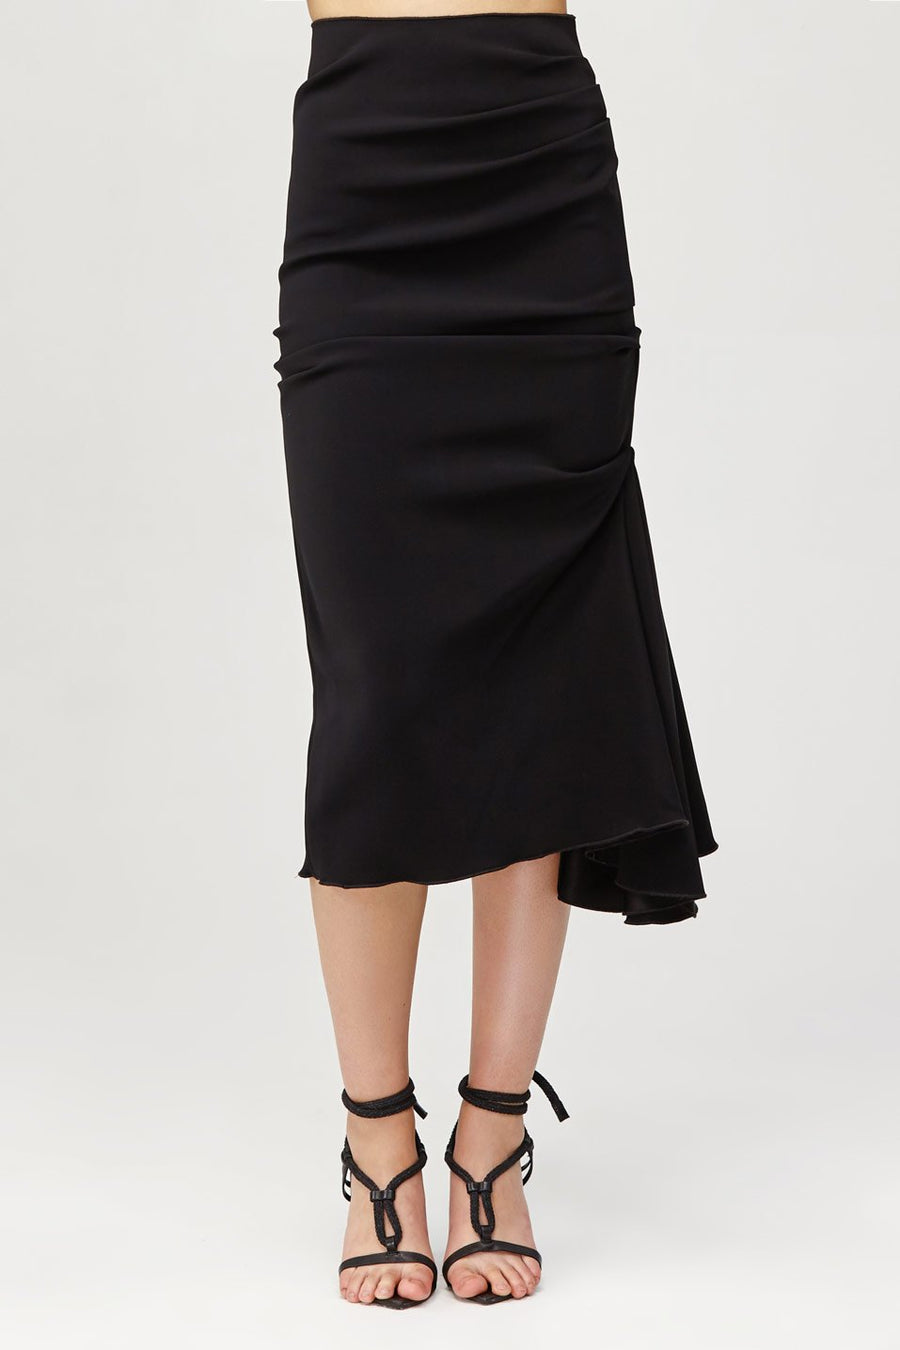 Acler Riverside Skirt